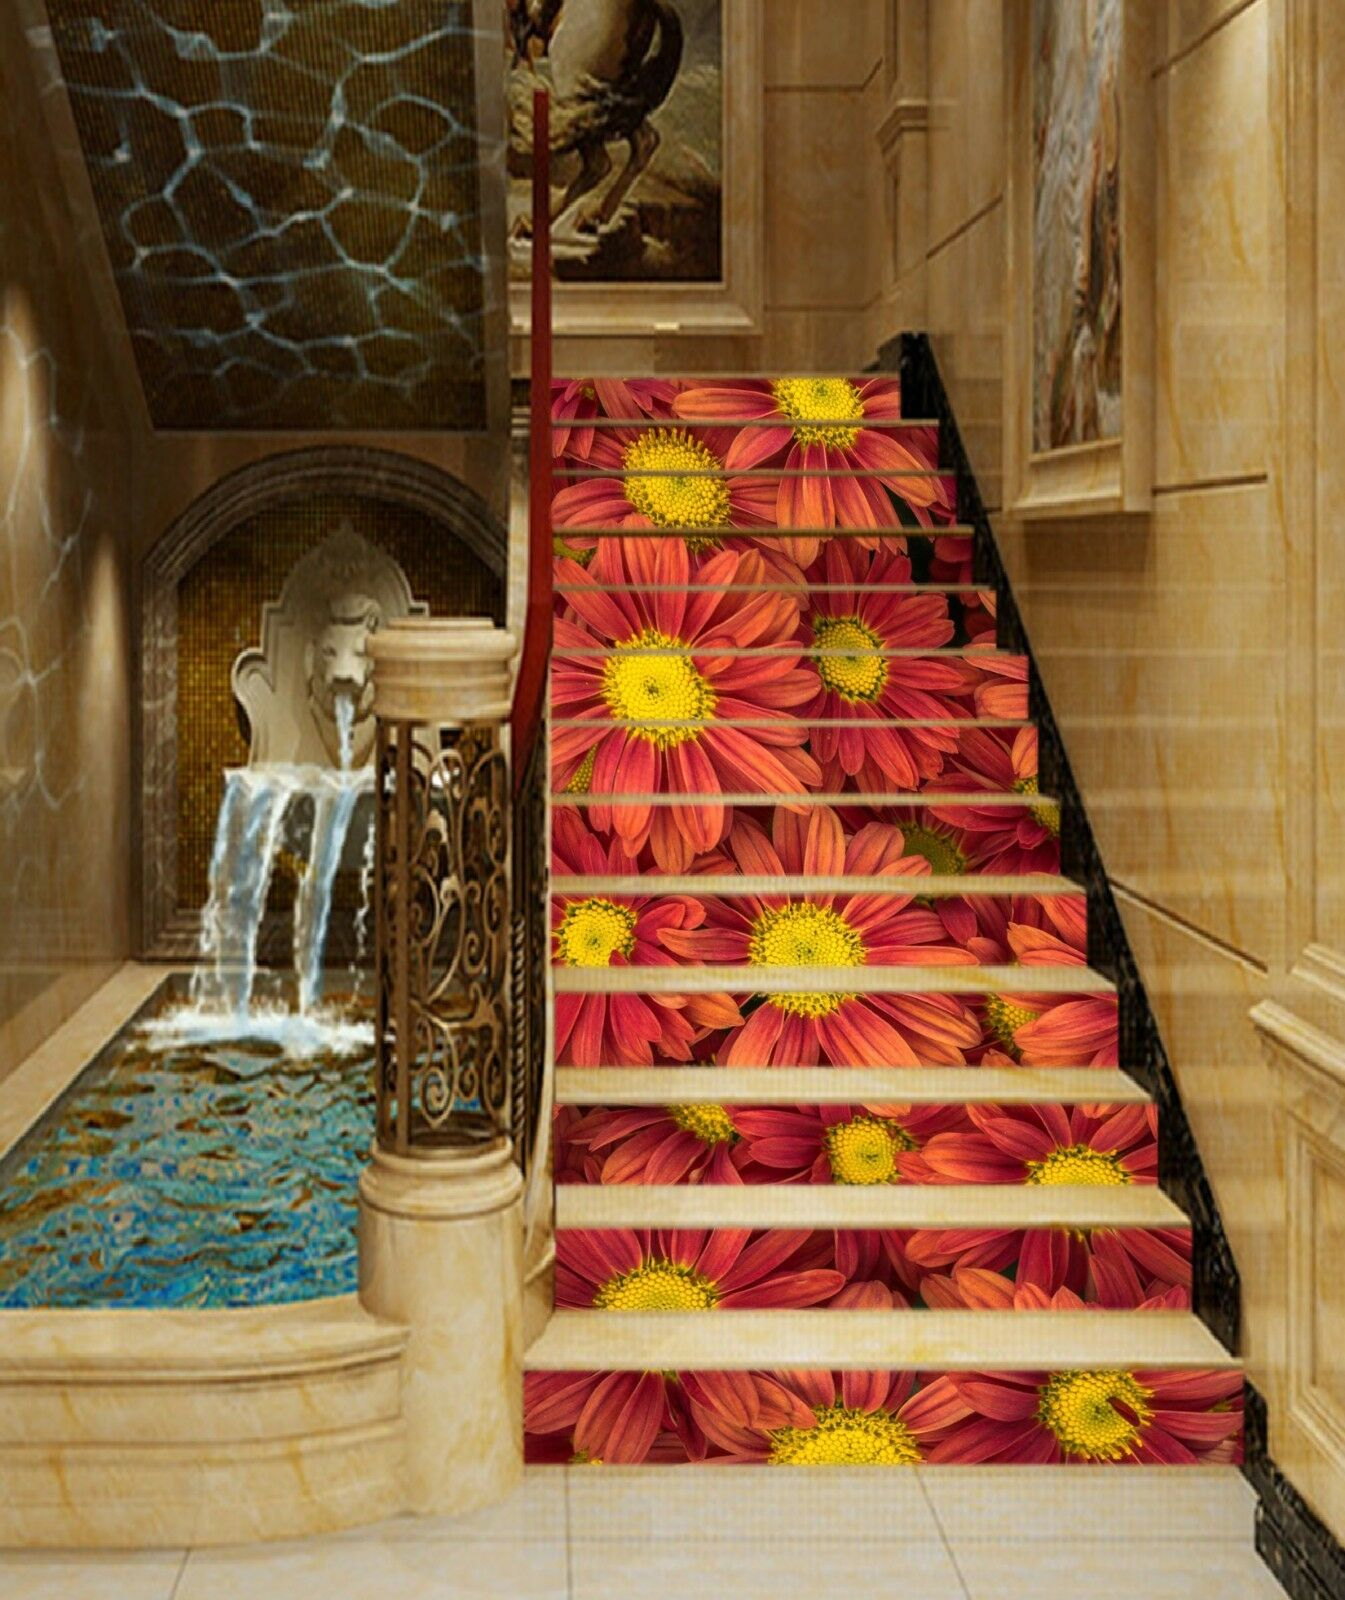 3D Cosmos Flowers Stair Risers Decoration Photo Mural Vinyl Decal Wallpaper UK